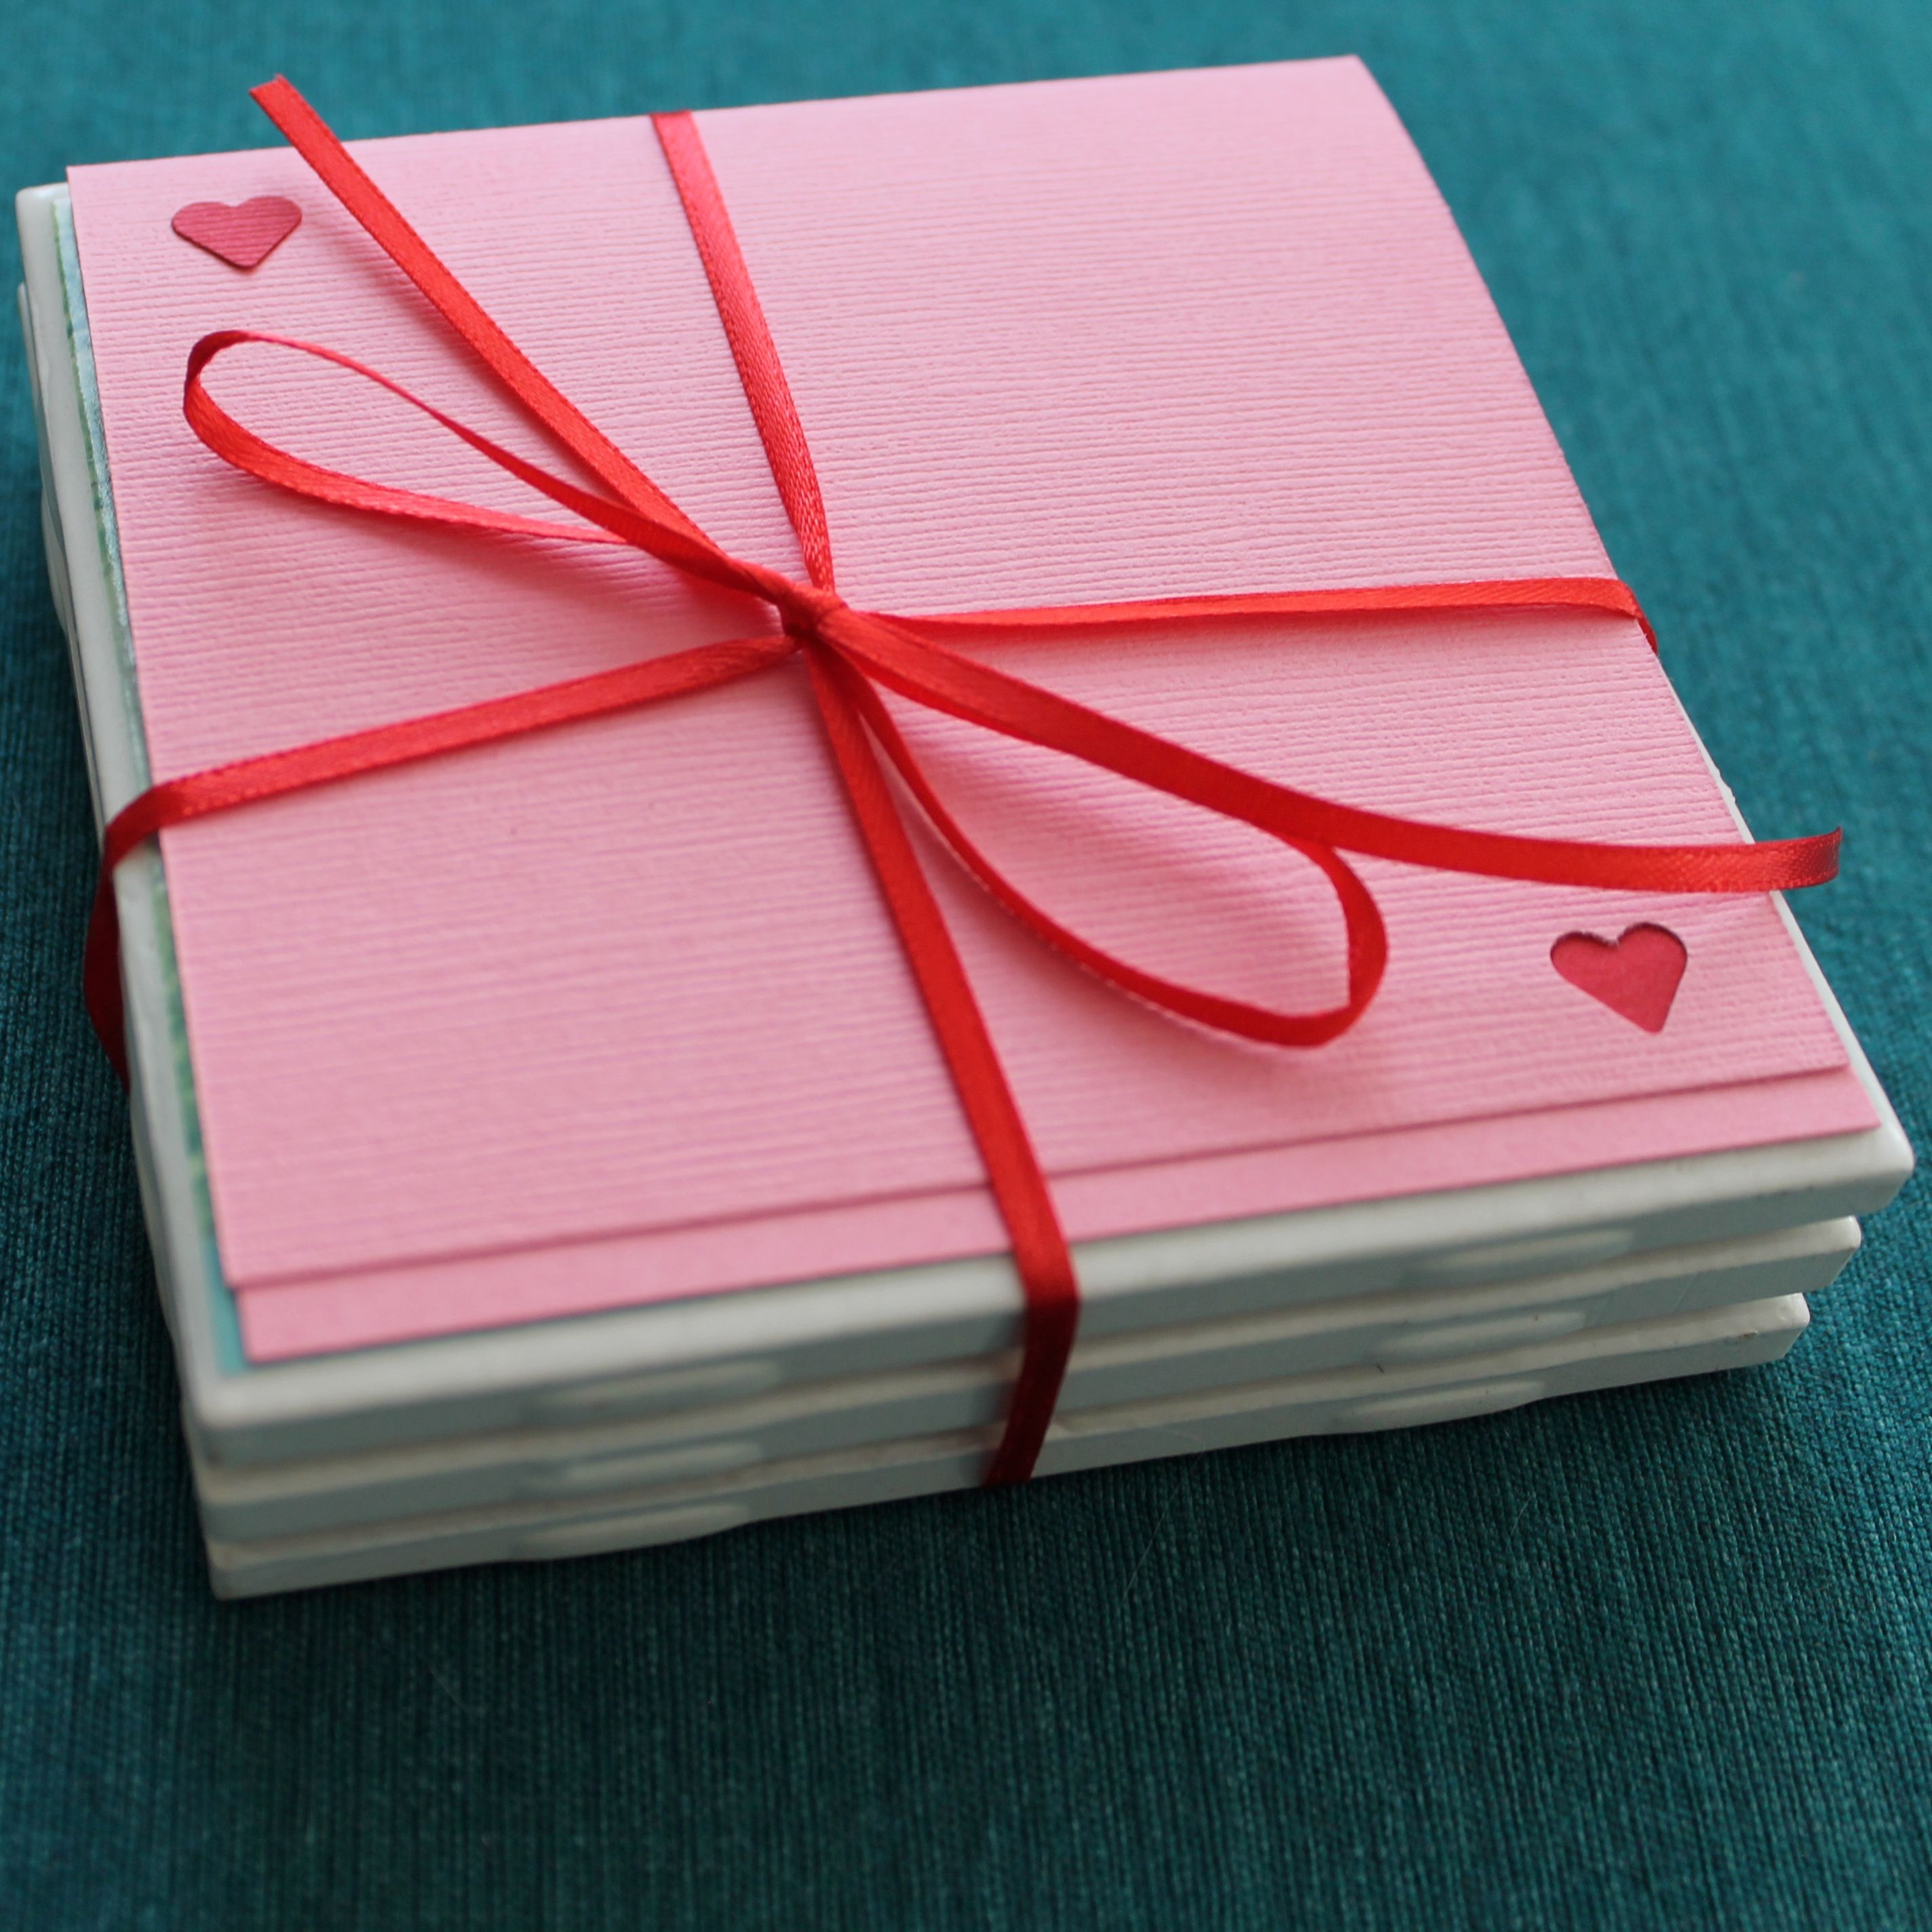 Personalised Valentines Day Gifts Ireland 2021